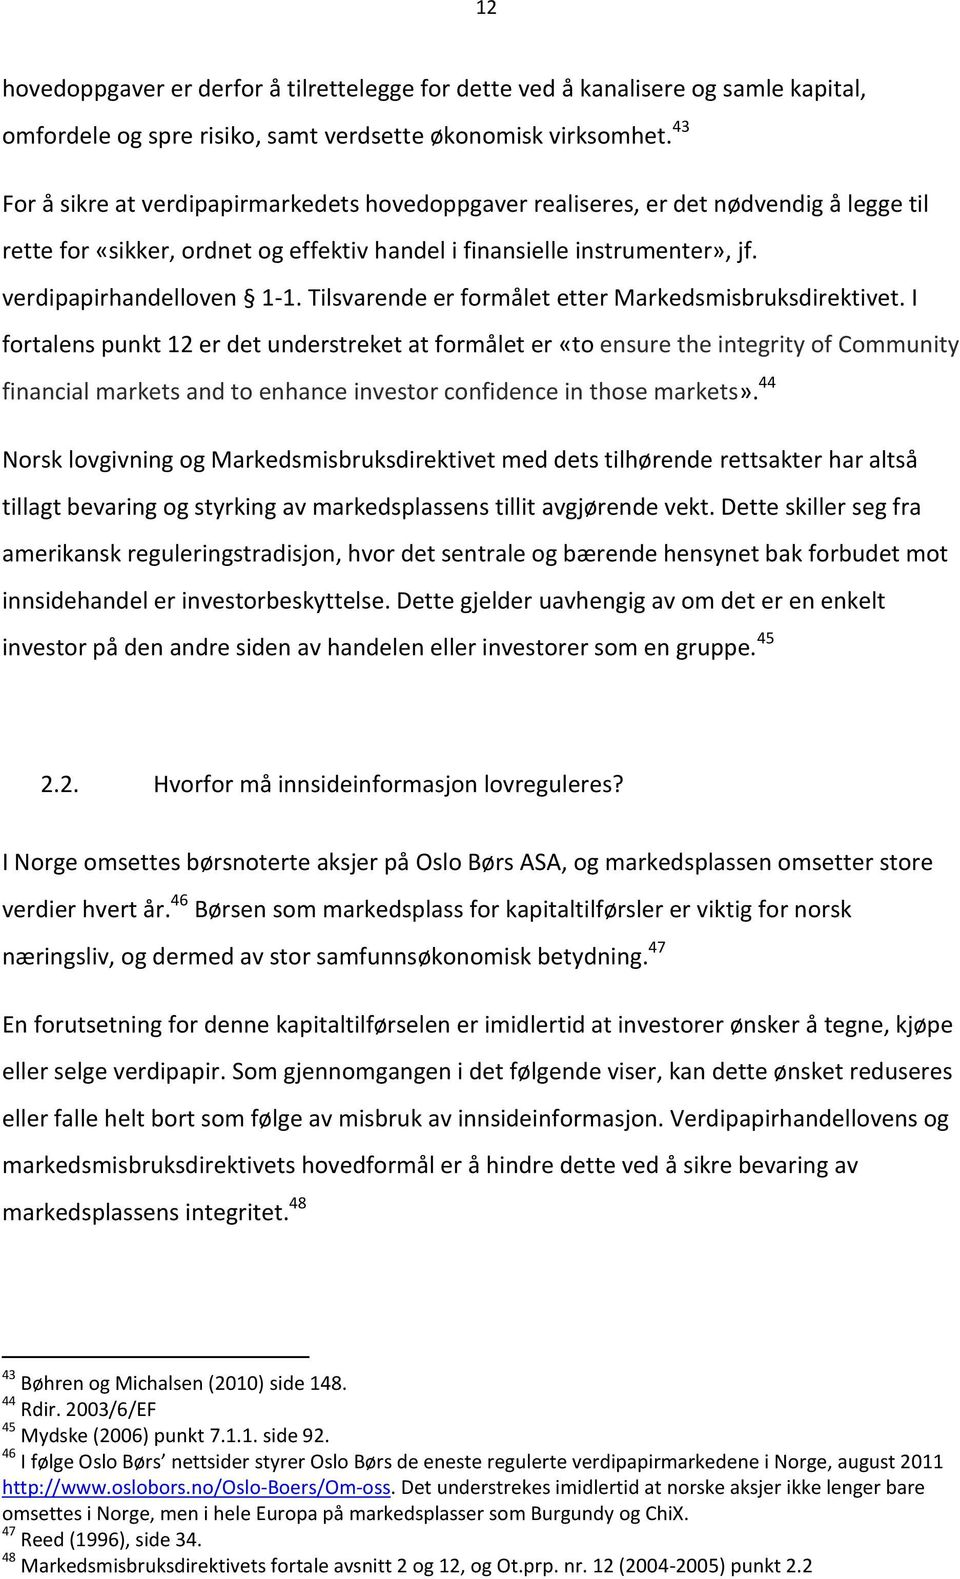 Markedsmisbruksdirektivet I fortalens punkt 12 er det understreket at formålet er «to ensure the integrity of Community financial markets and to enhance investor confidence in those markets» 44 Norsk